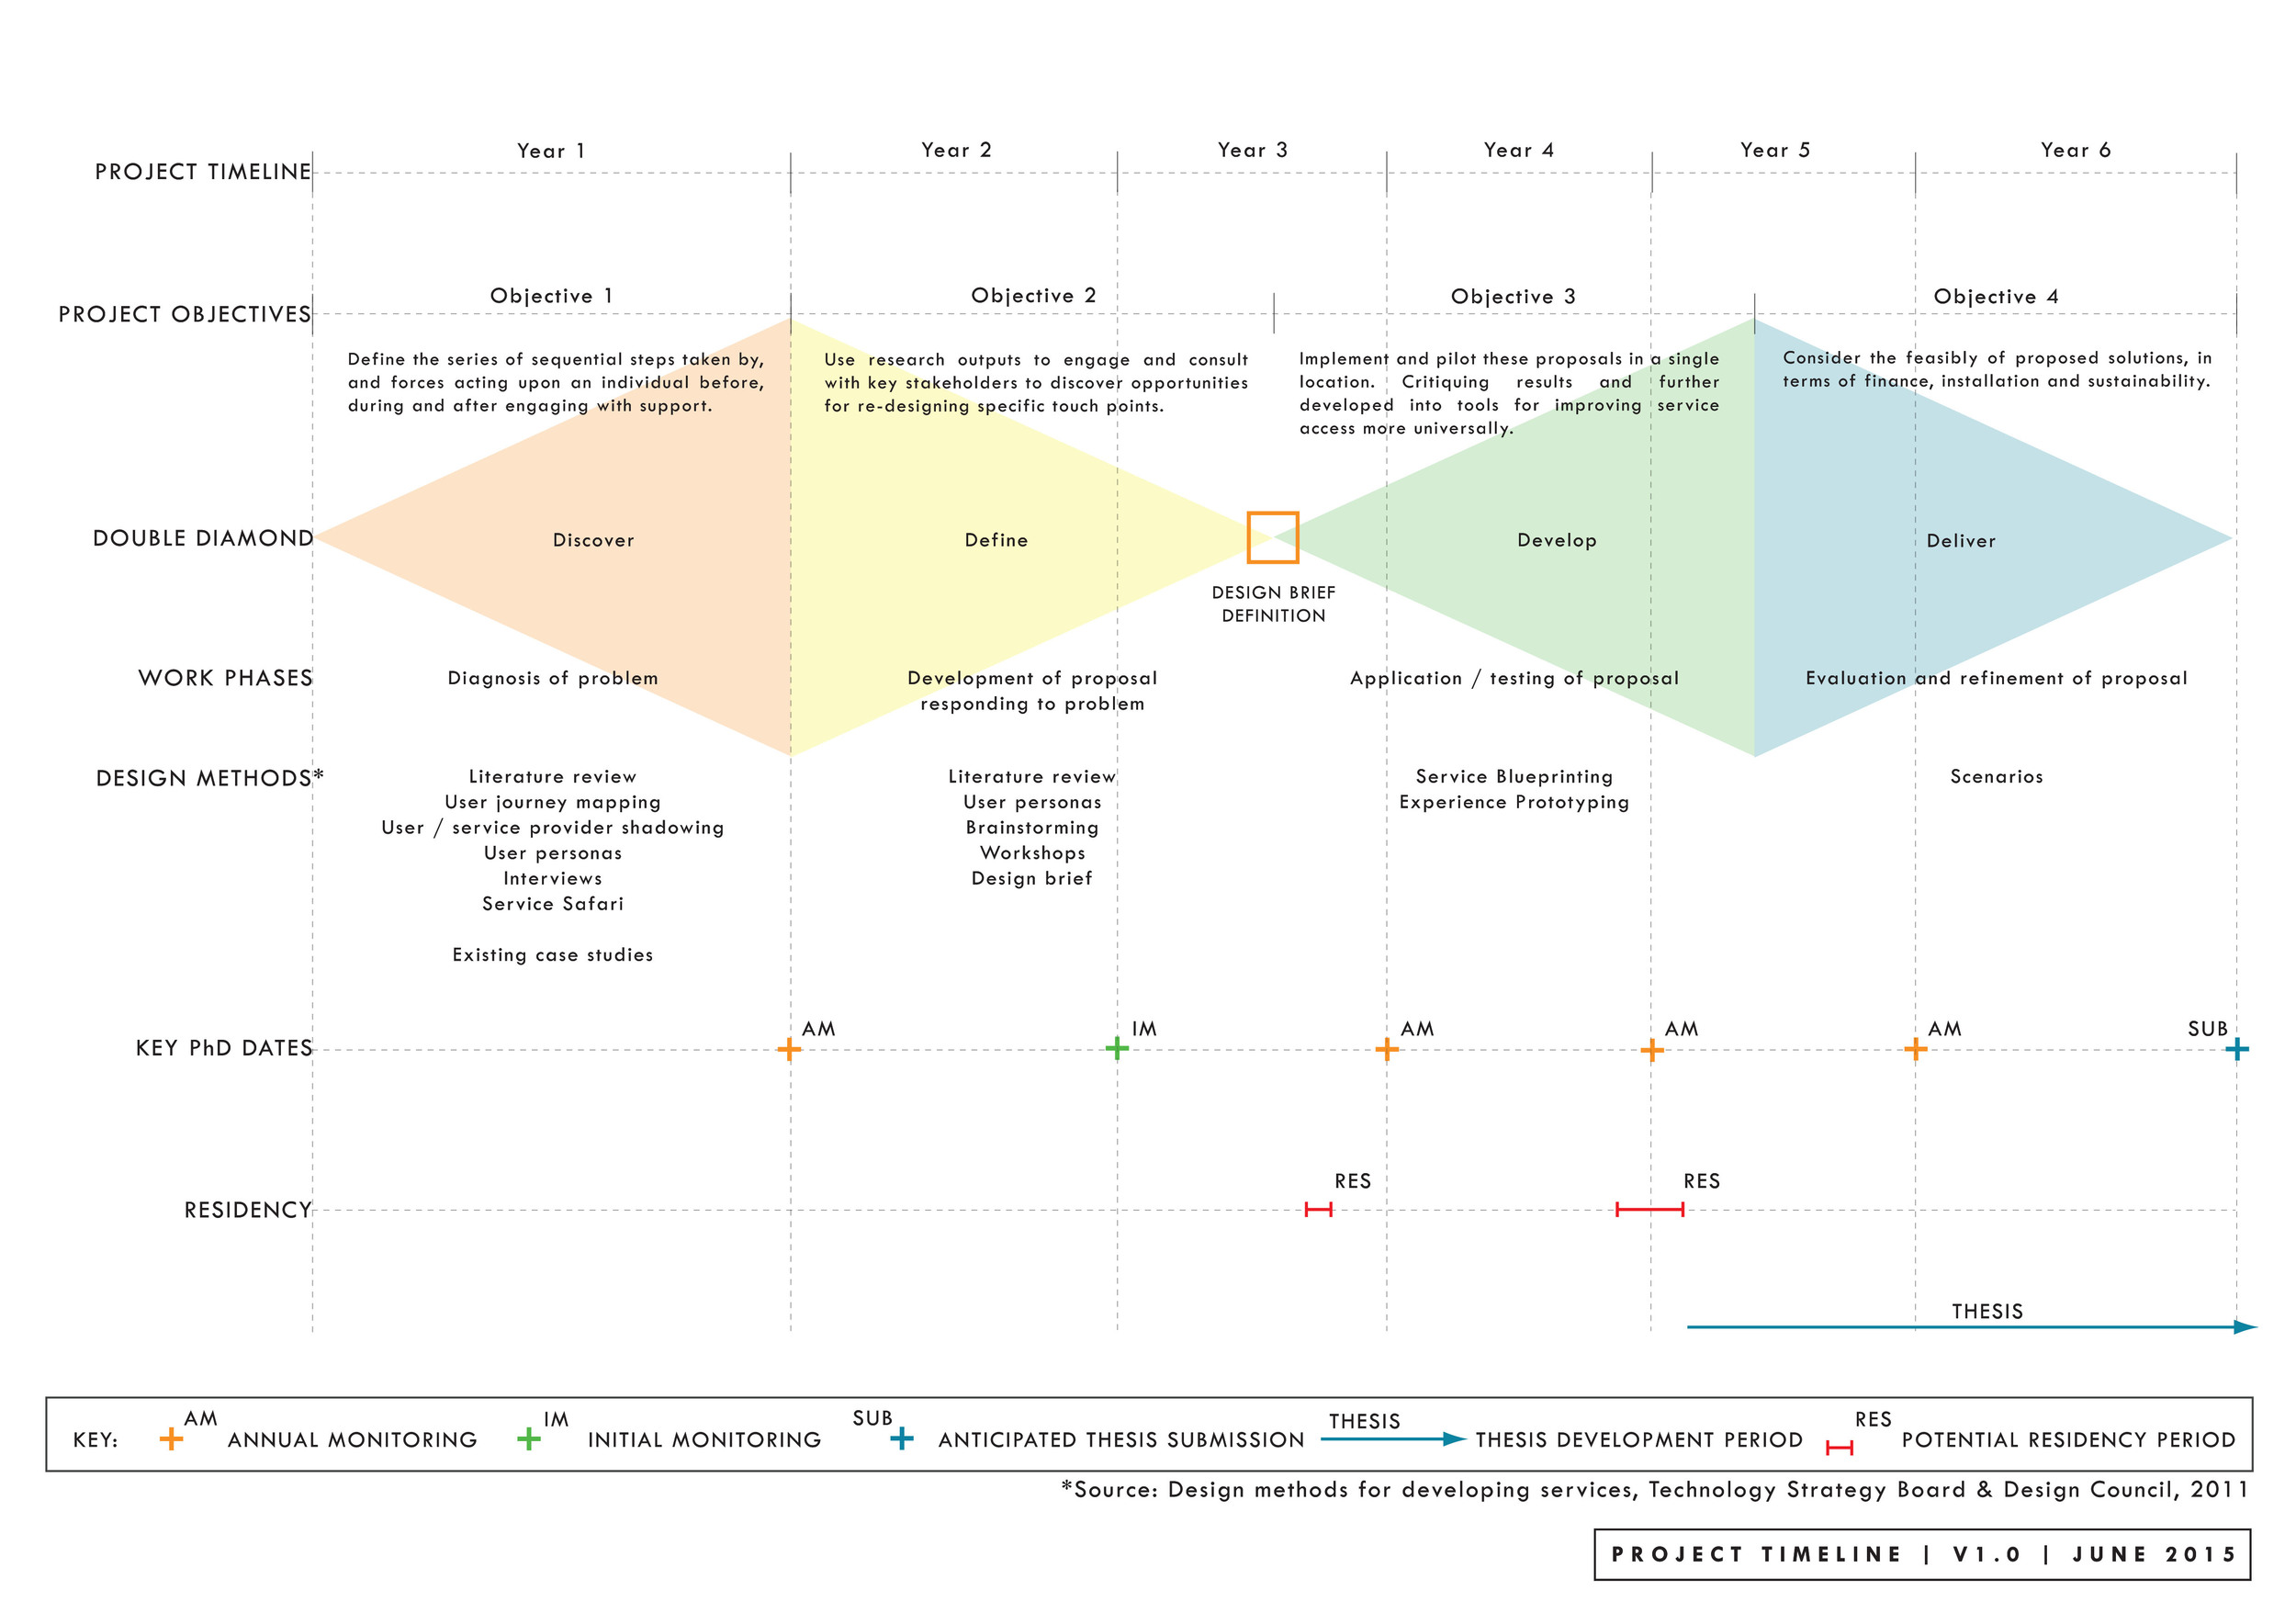 Updated project timeline